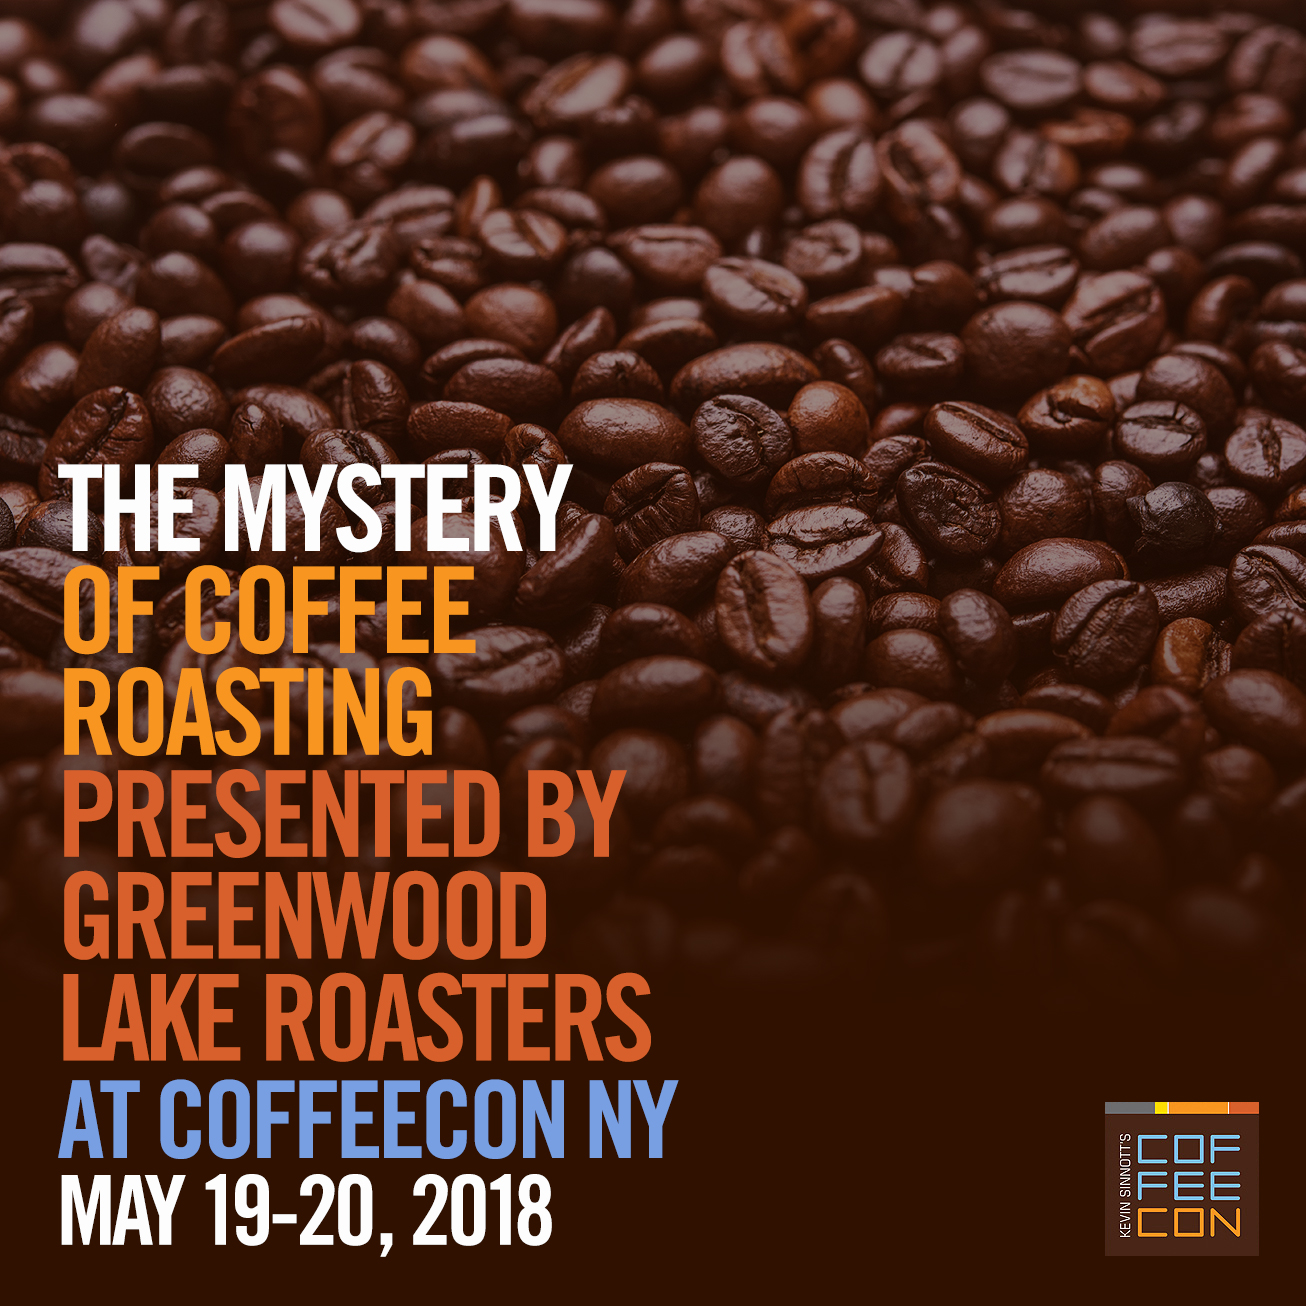 The Mystery of Coffee Roasting with Greenwood Lake Roasters